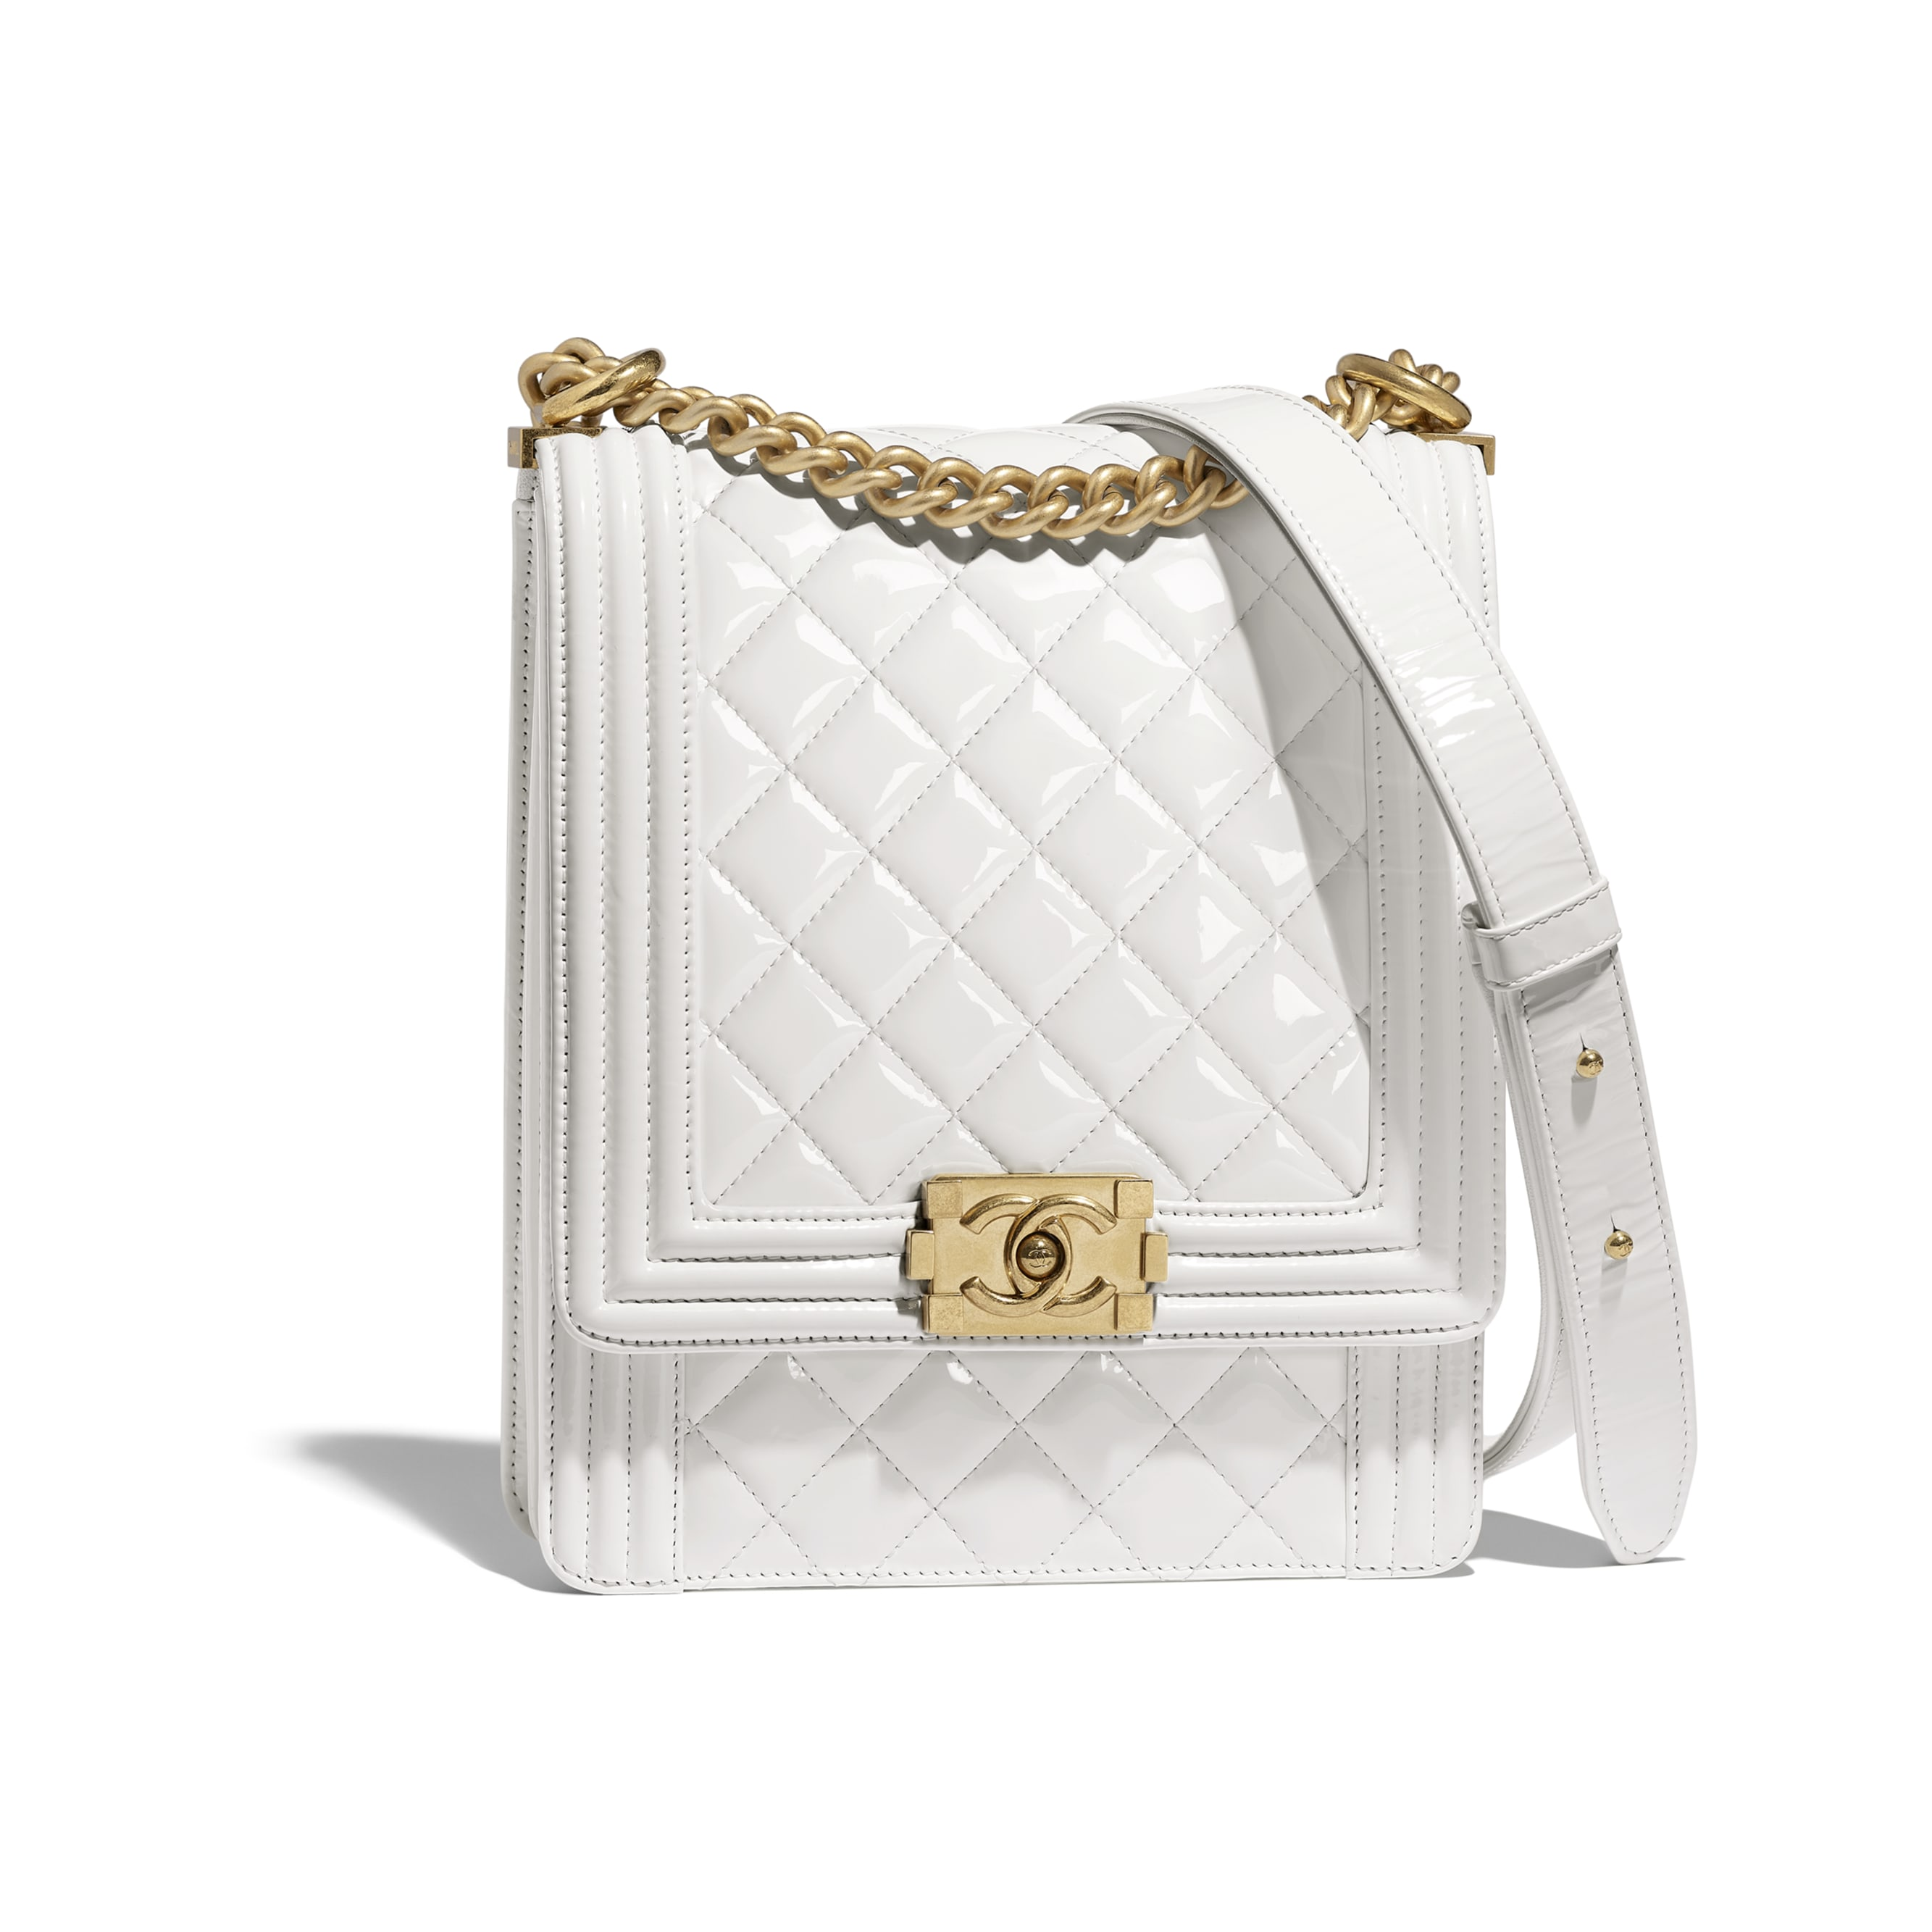 133c968acb73 ... BOY CHANEL Handbag - White - Patent Calfskin   Gold-Tone Metal -  Default view